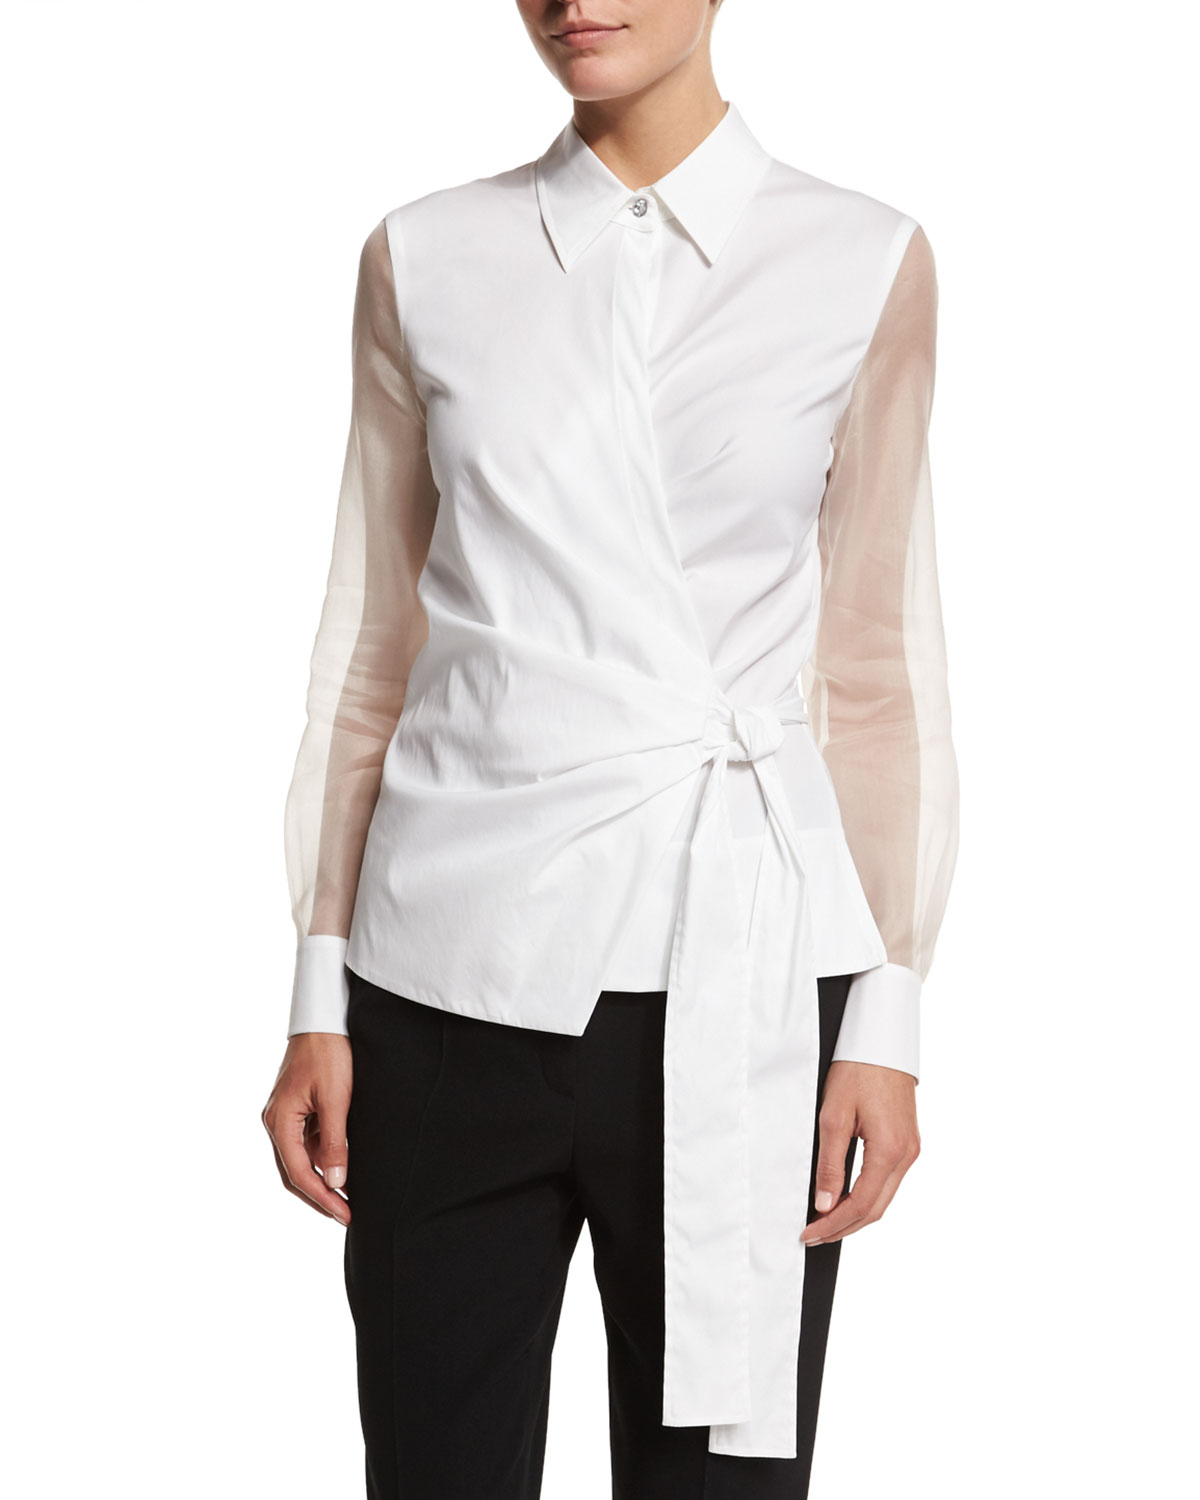 Sheer-Sleeve Wrap Blouse, White, Size: 32 - Escada